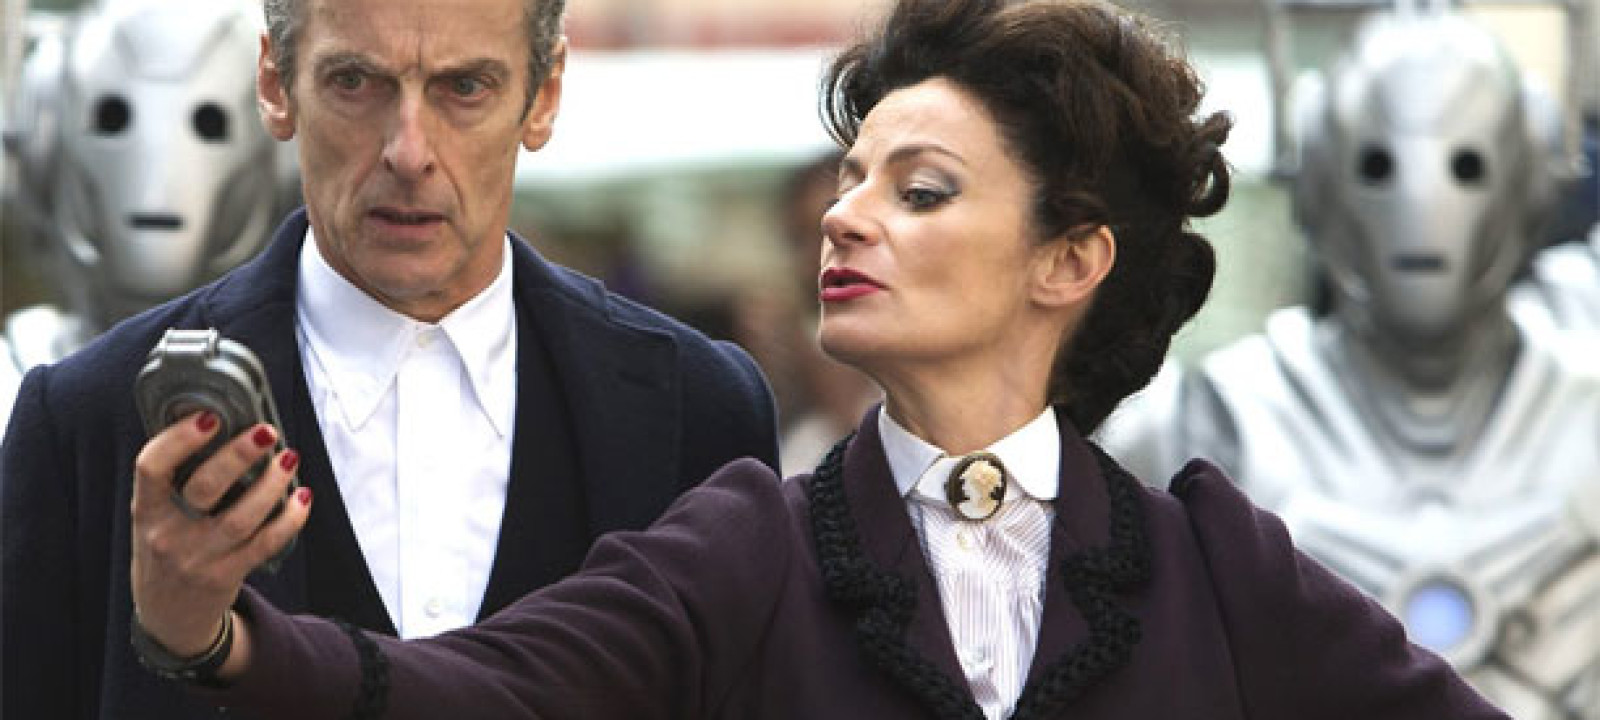 Missy and the Doctor